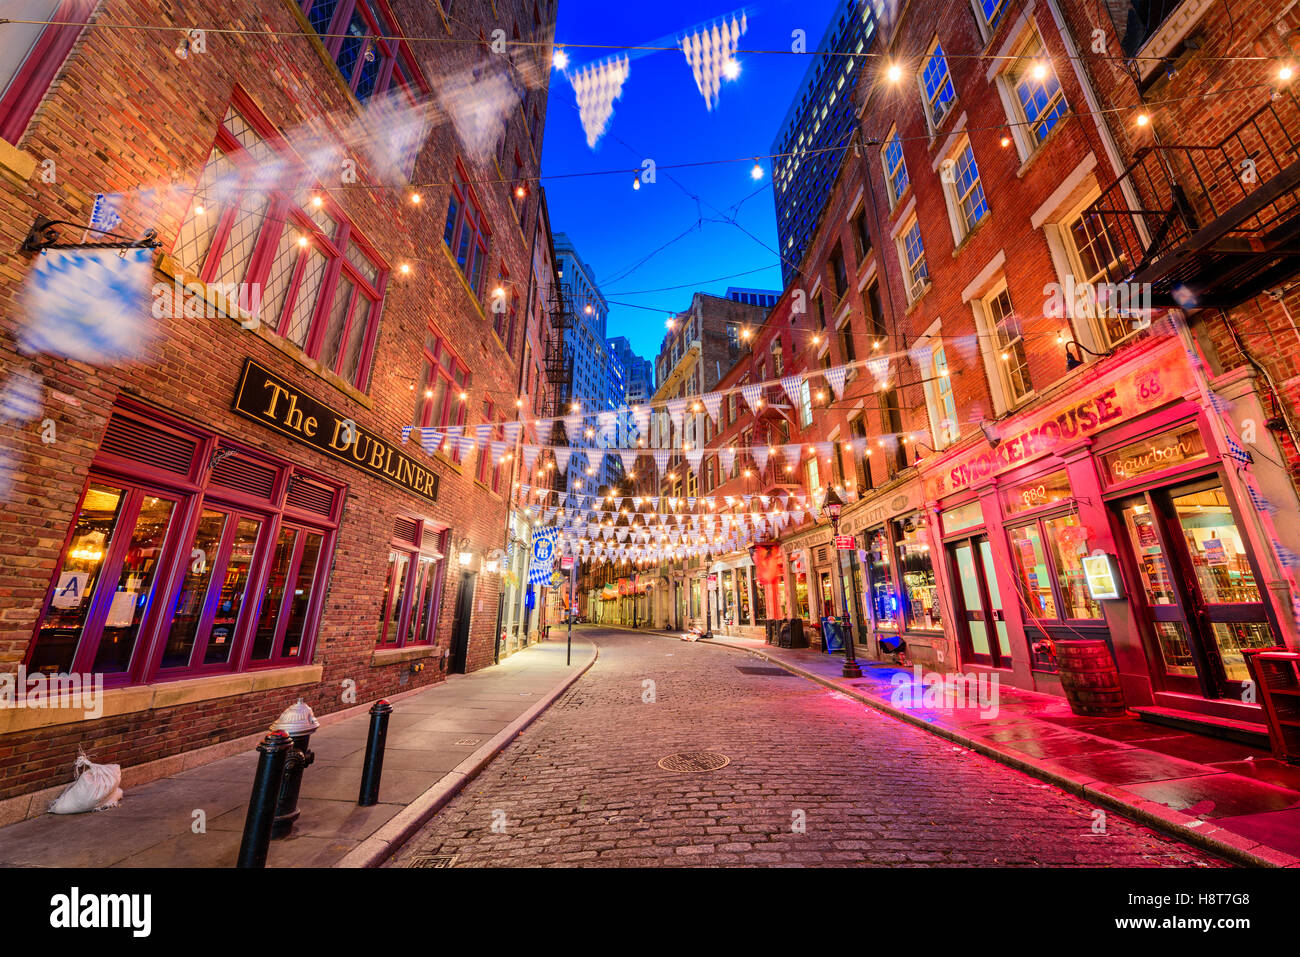 NEW YORK CITY - NOVEMBER 12, 2016: Stone Street in the Financial District of Manhattan. - Stock Image